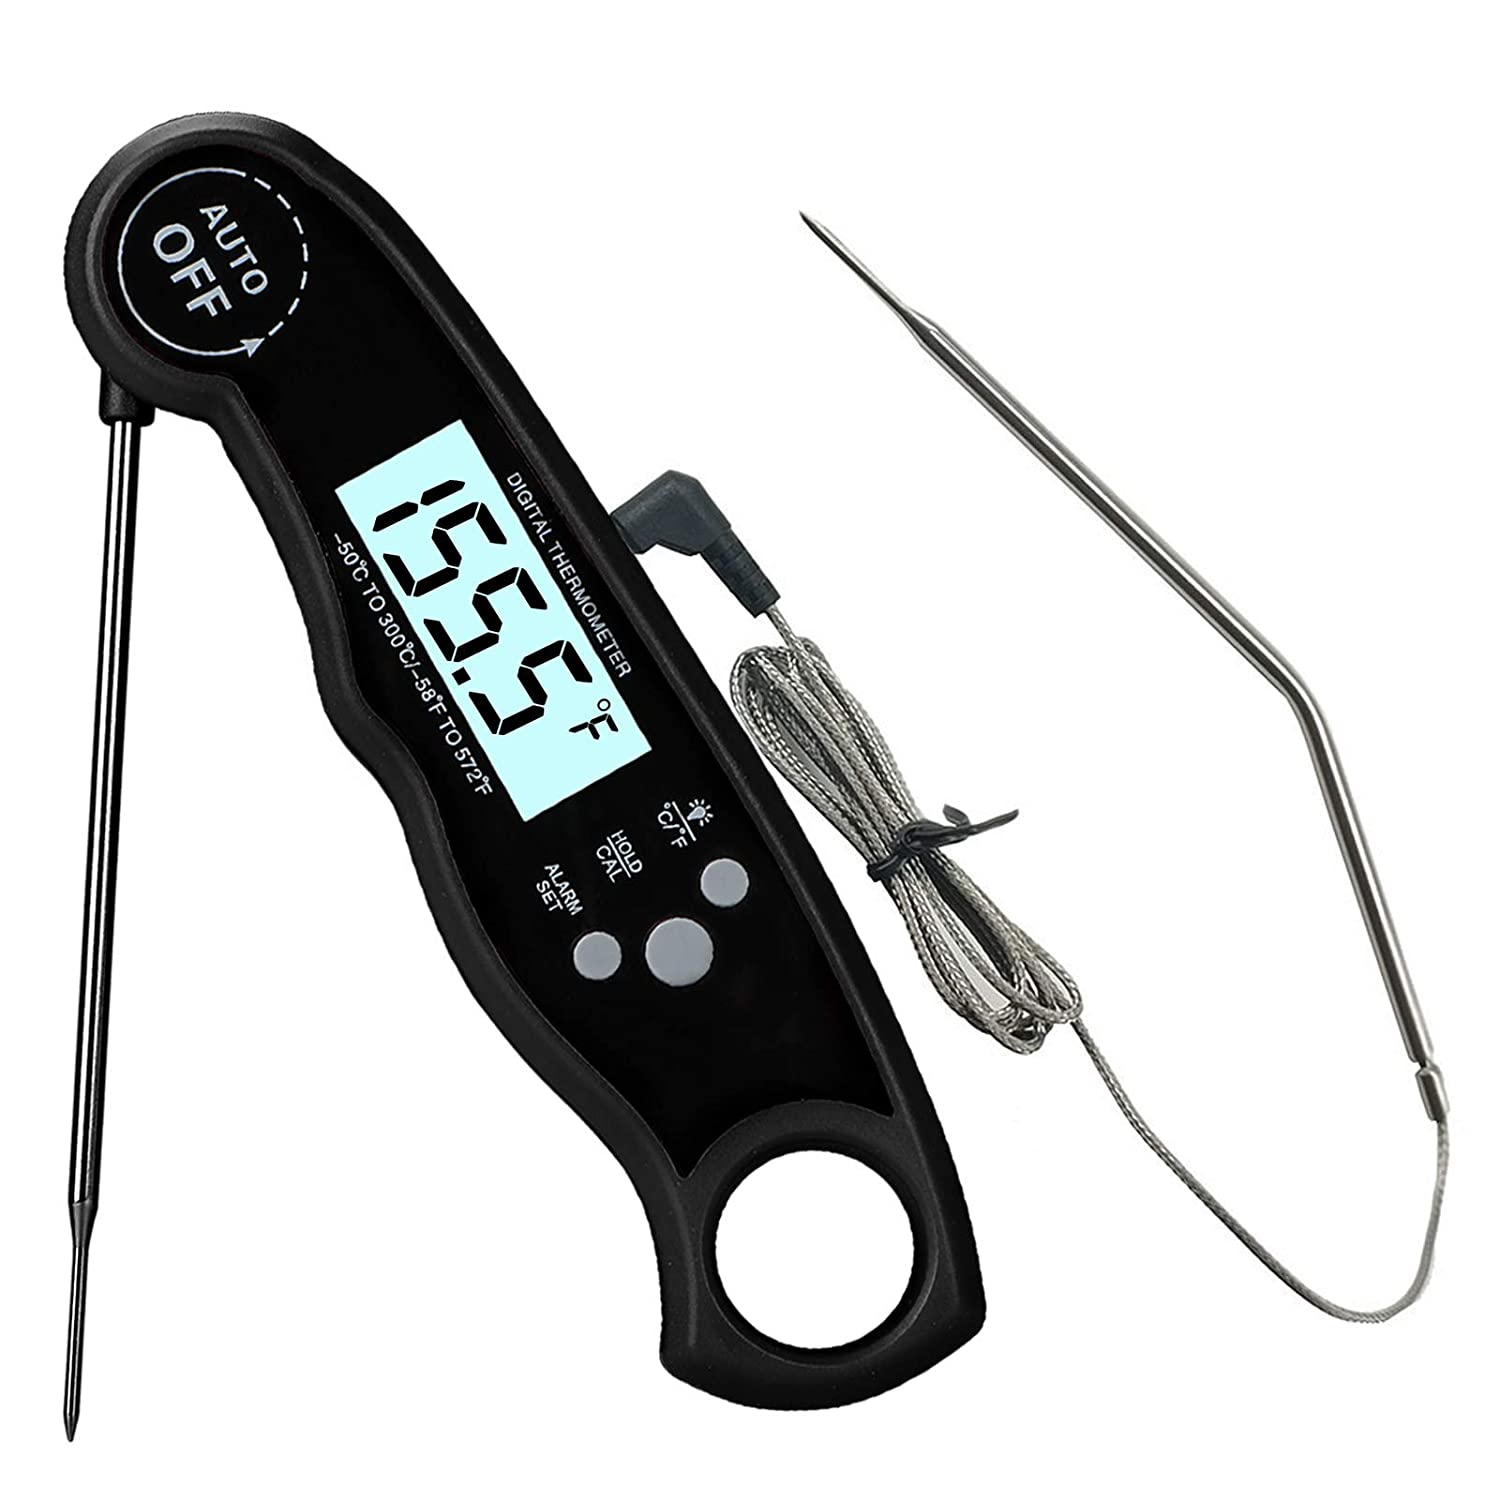 Food Thermometer, Digital Food Thermometer Instant Read, Meat Thermometer for Cooking, Grilling, Smoking, Baking, Turkey, Milk, Dual Probe Thermometer 2 in 1 Function(Black)